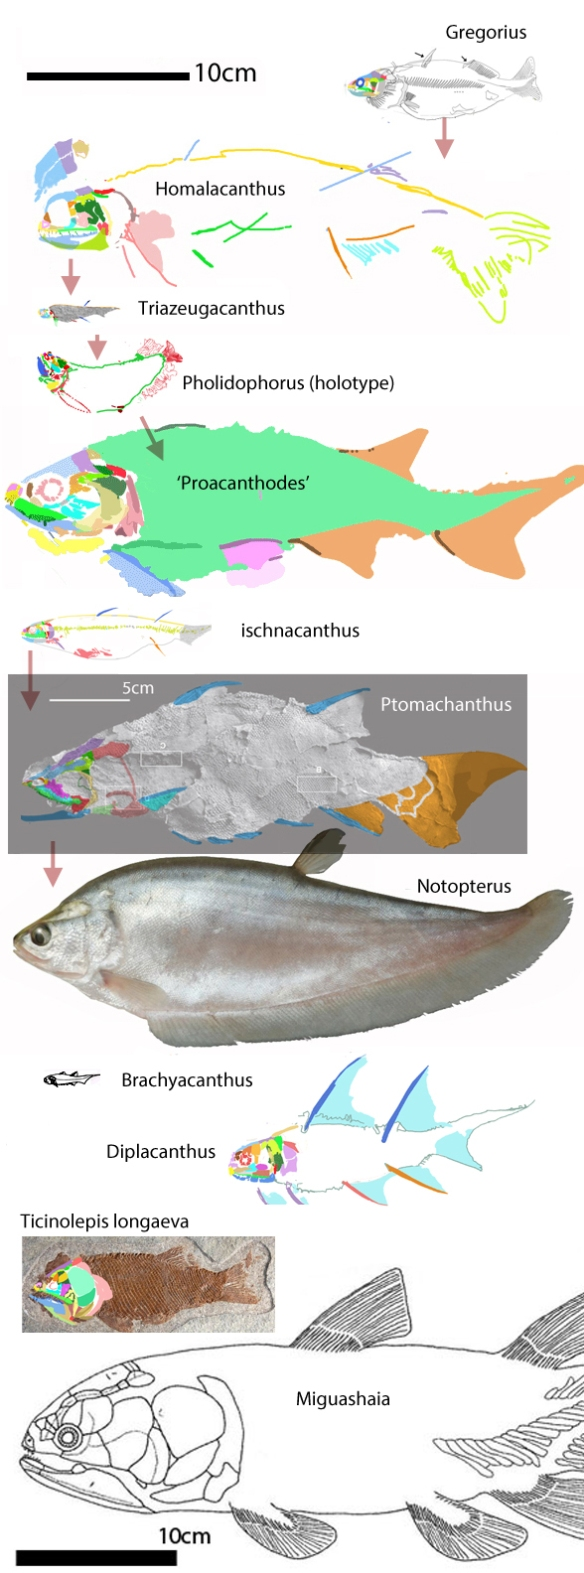 Figure 1. Taxa from the LRT on the other branch of the bony fish, including spiny sharks, bony tongues, placoderms, catfish and lobefins.